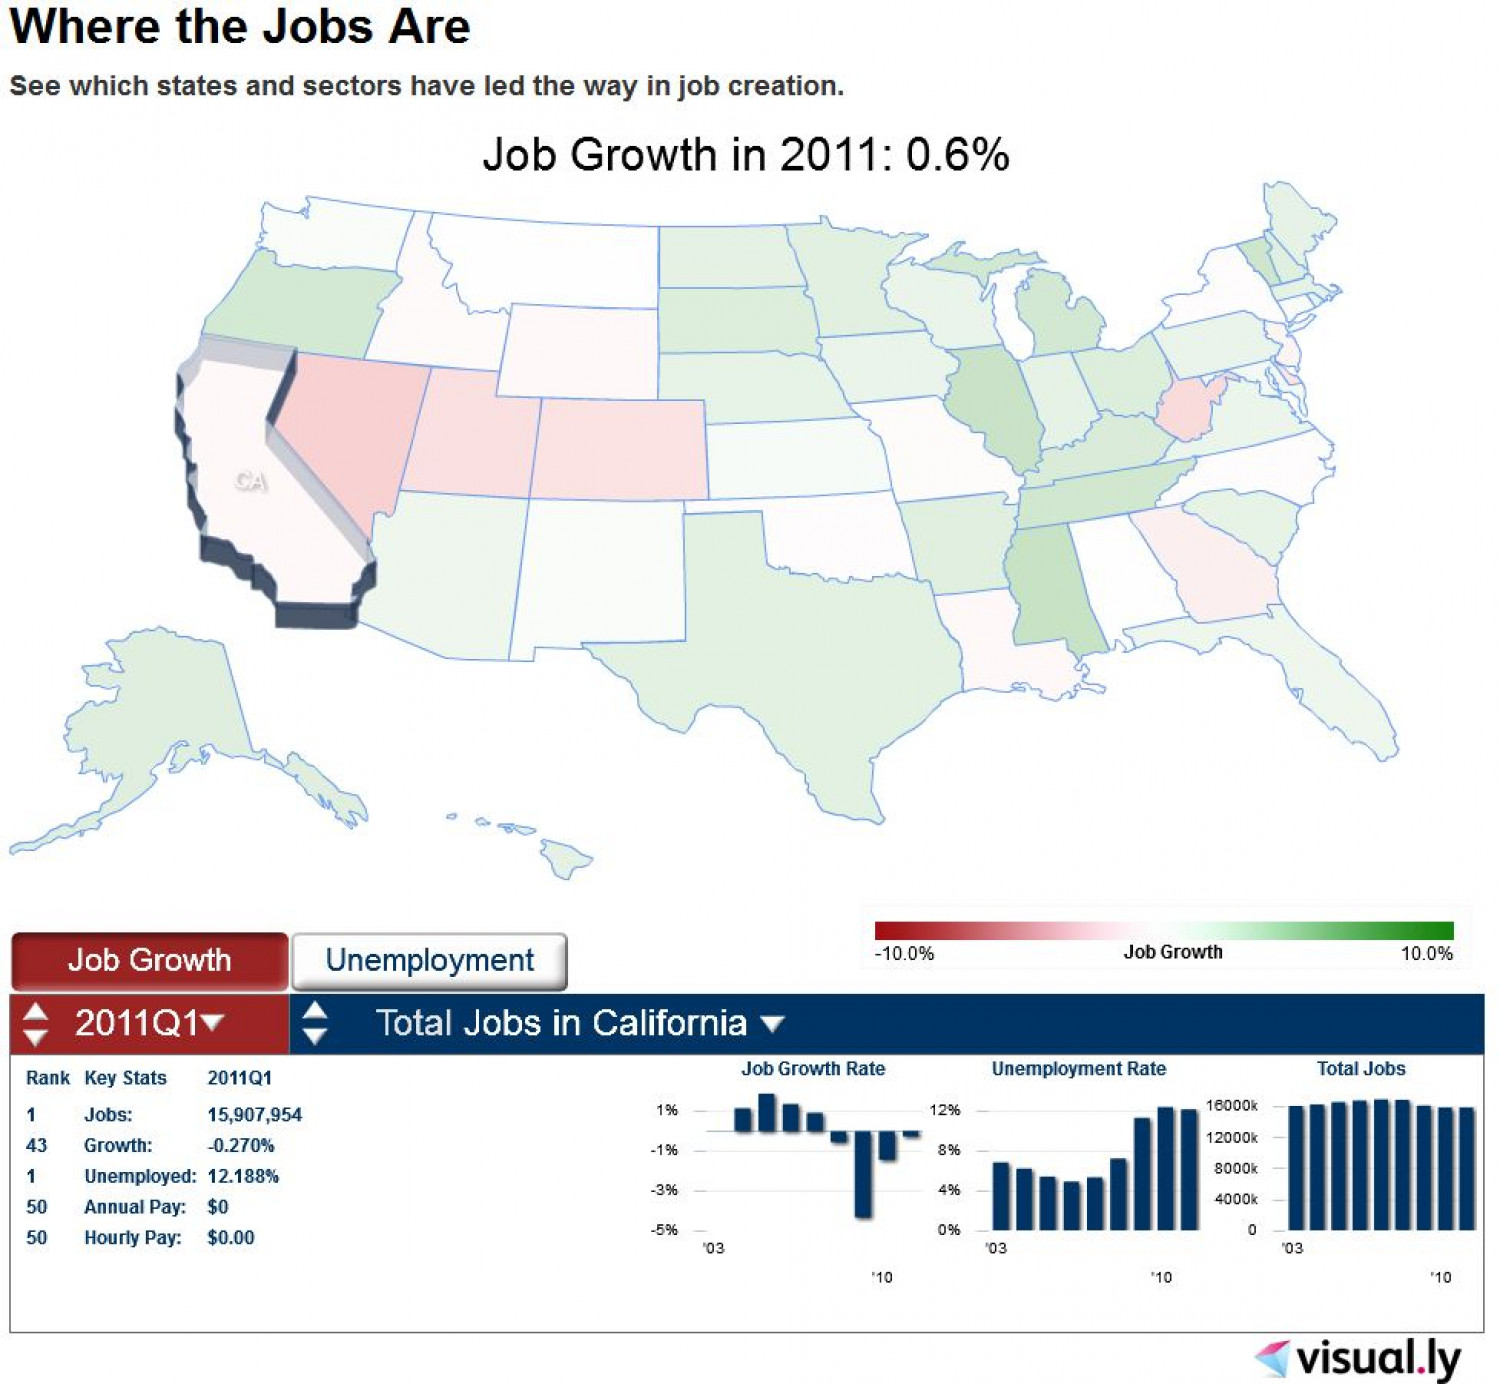 Where the Jobs Are Infographic